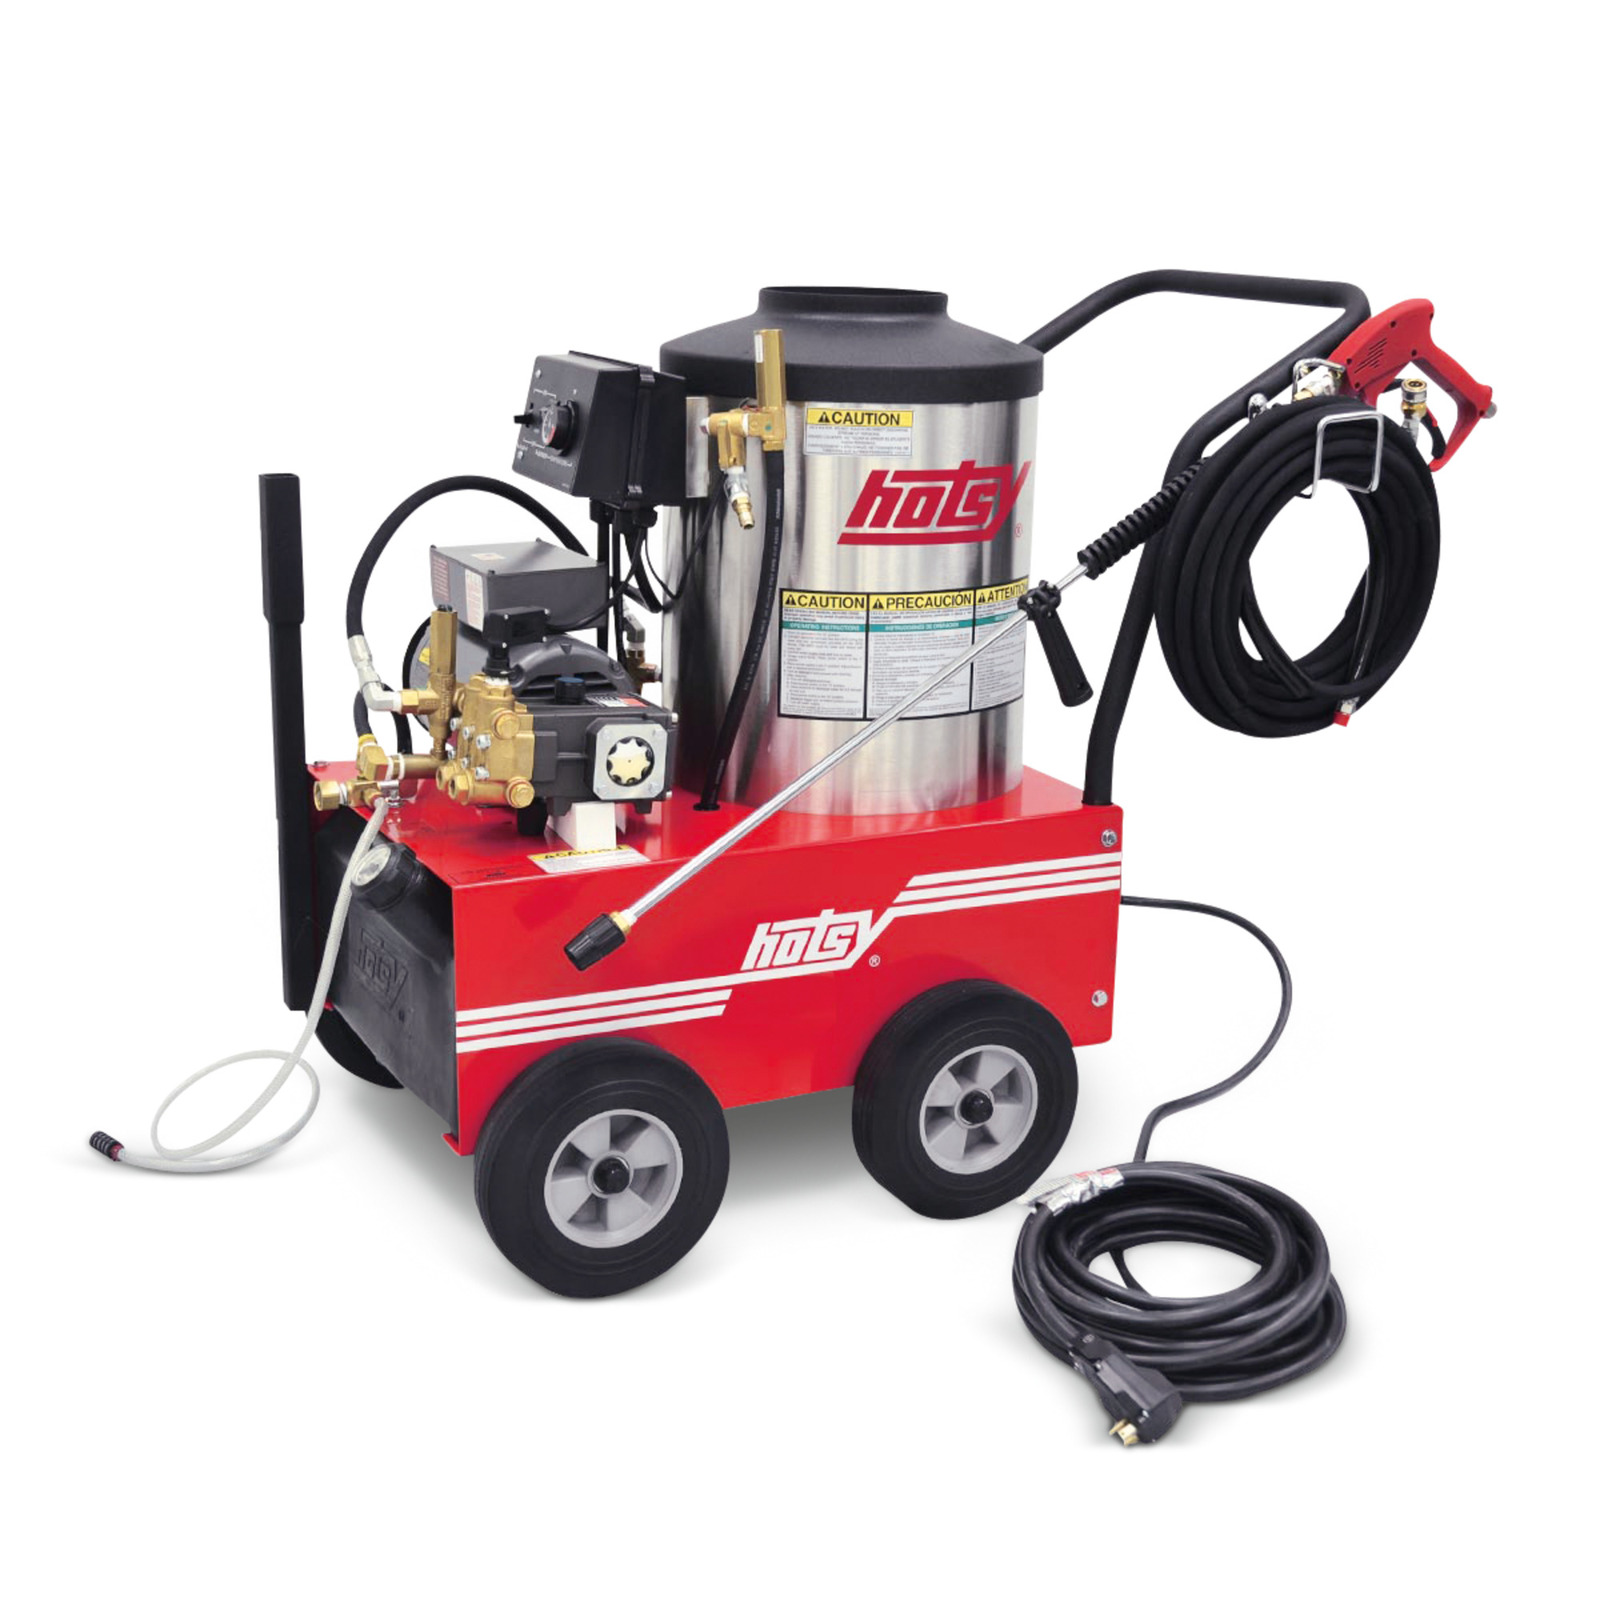 500 Series - Electric Hot Water Pressure Washers | Hotsy